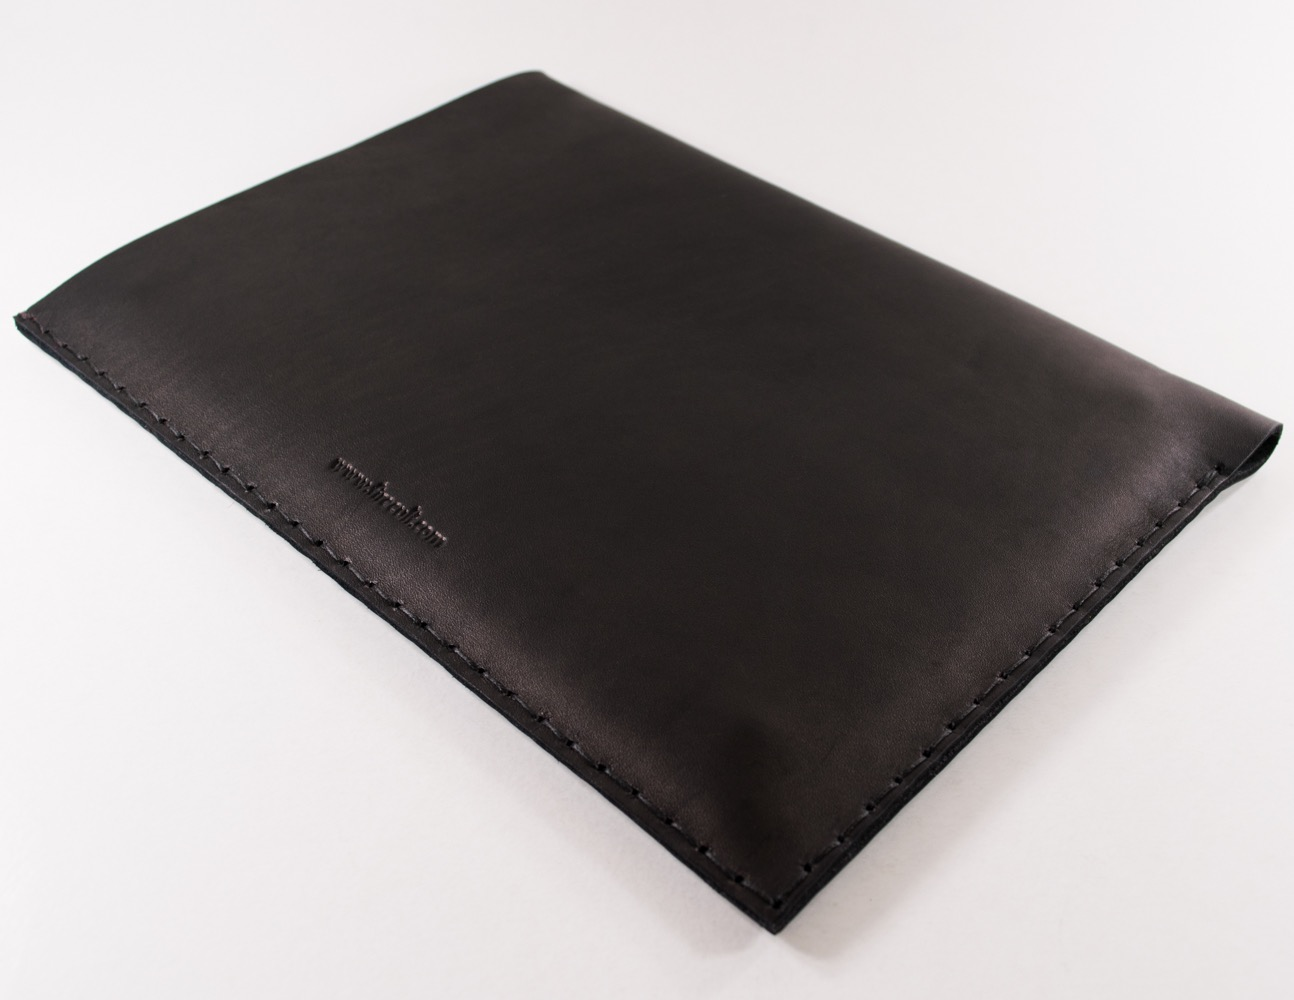 12-inch-macbook-black-thick-natural-leather-sleeve-case-straight-cut-by-firecult-1300-x-1000-5